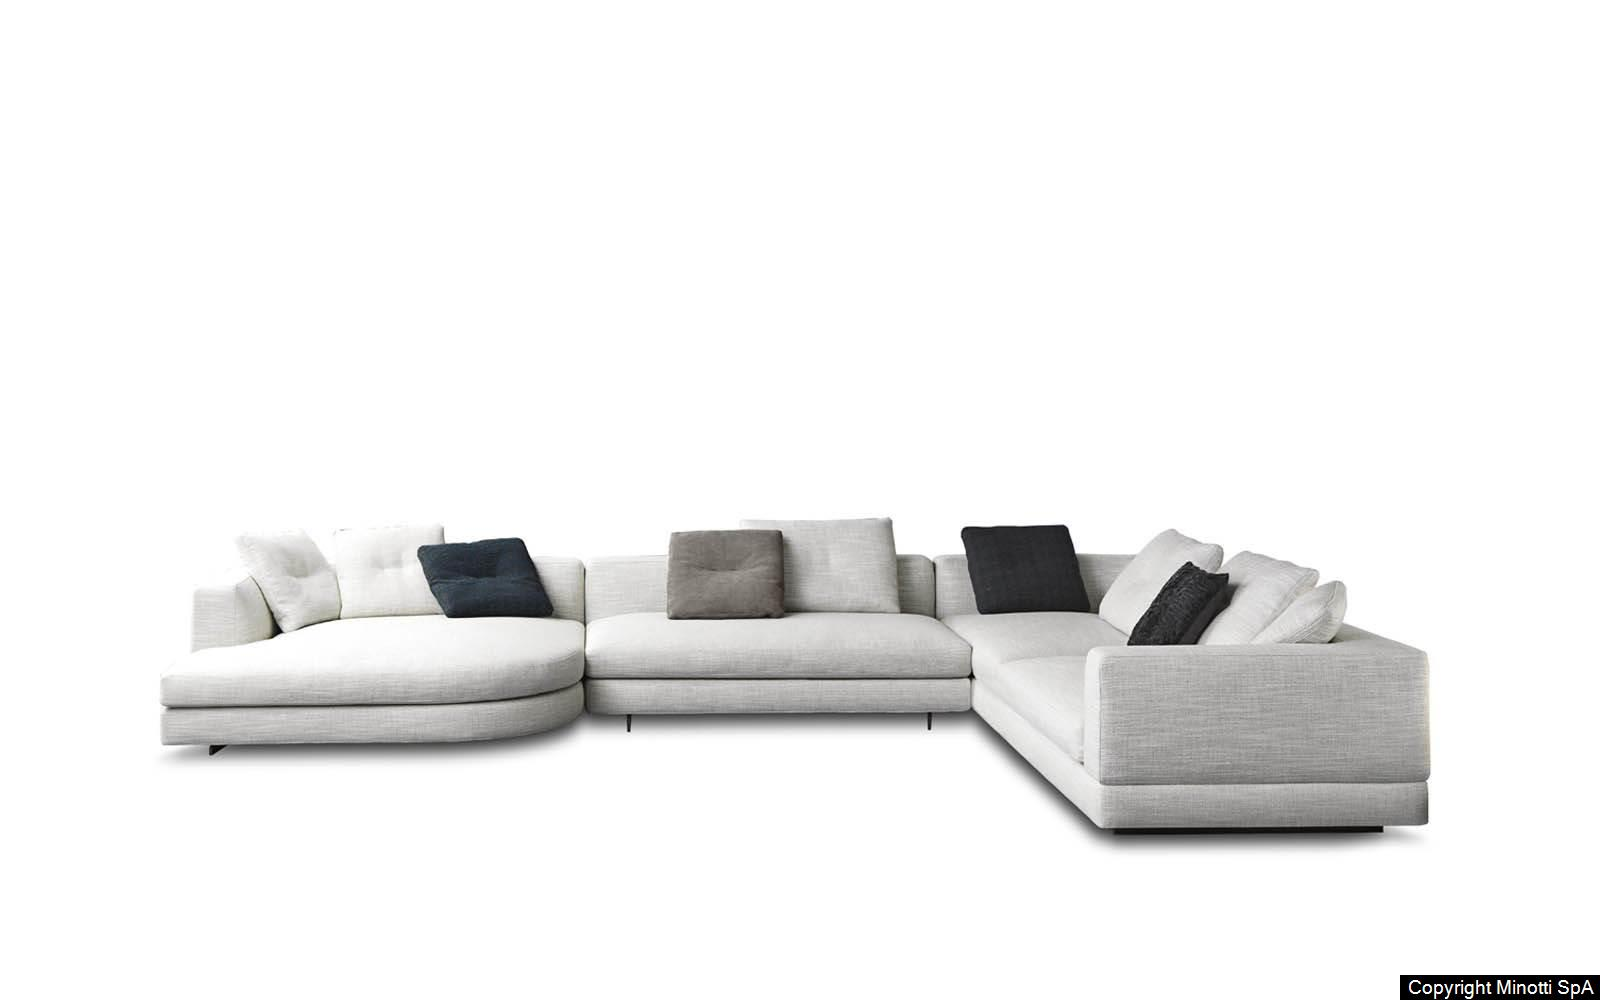 Full Size of Minotti Sofa Uk Alexander Preise For Sale Cost Freeman Dimensions Cad Block Outlet Sleeper Bed India Von Rodolfo Dordoni Design Bruno Wickart 2 5 Sitzer Brühl Sofa Minotti Sofa